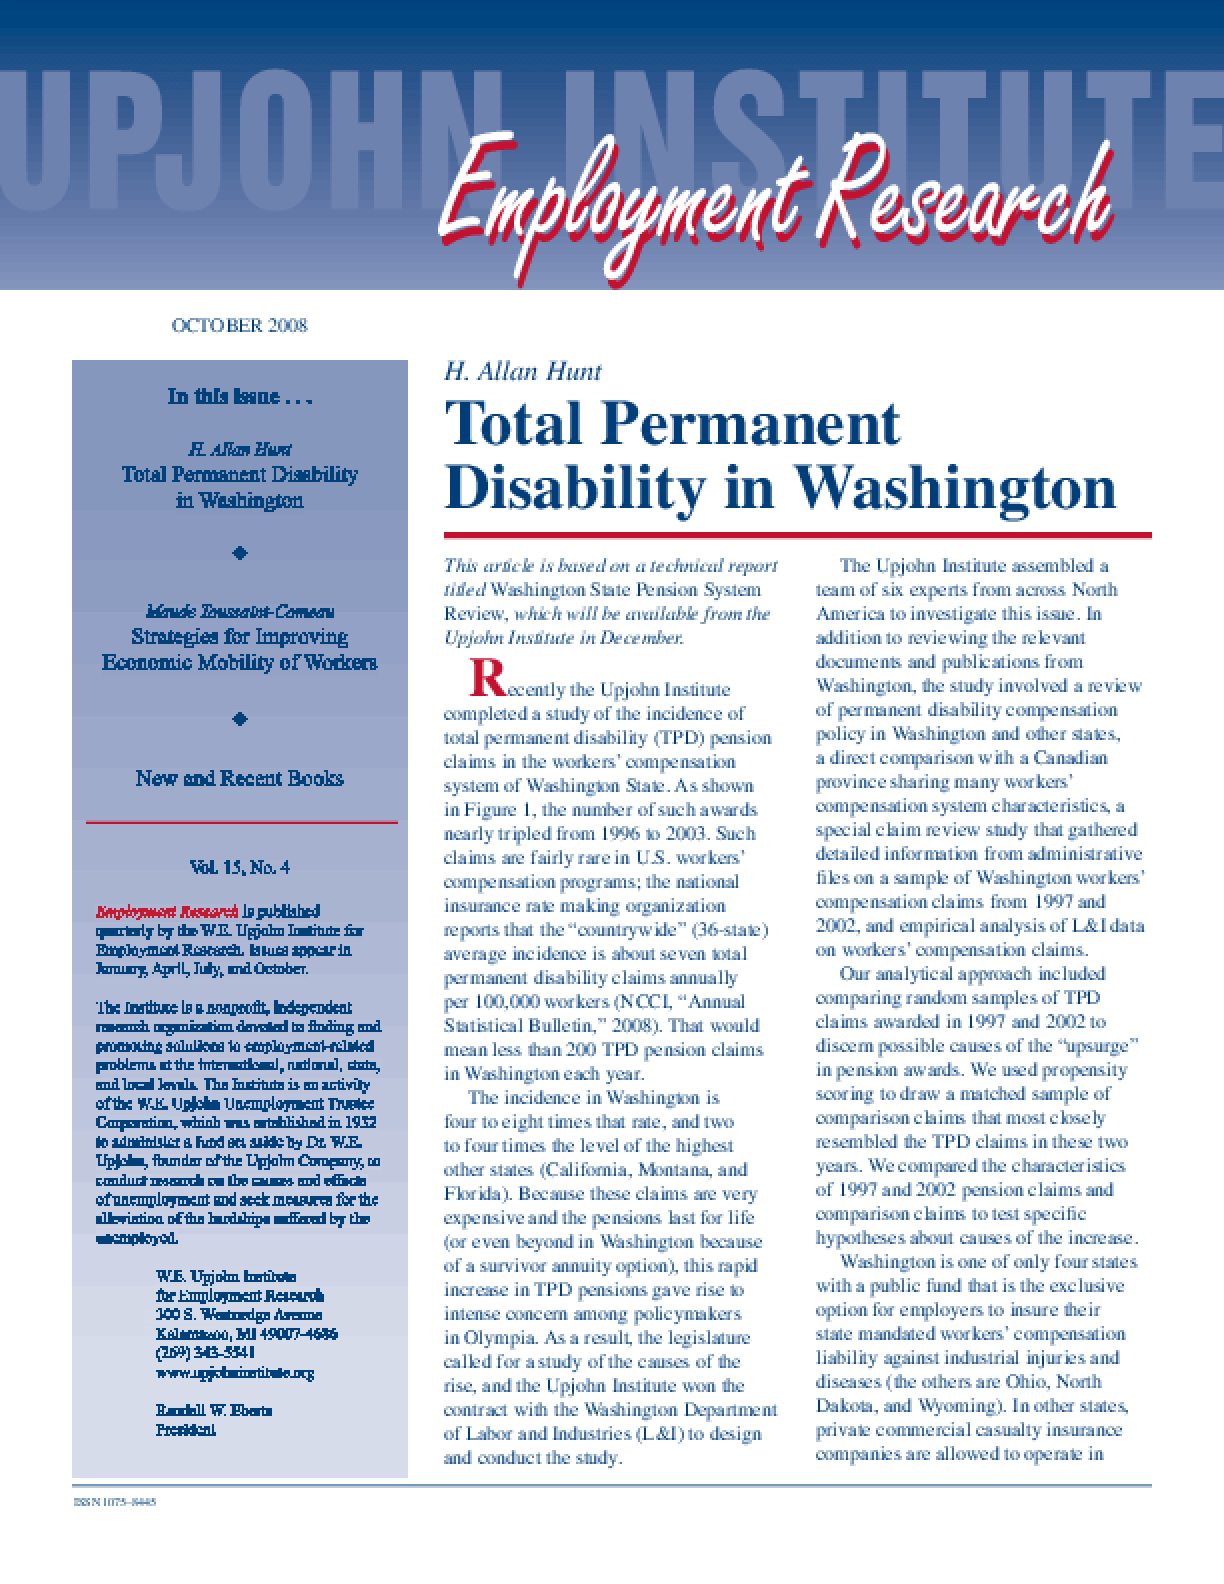 Total Permanent Disability in Washington